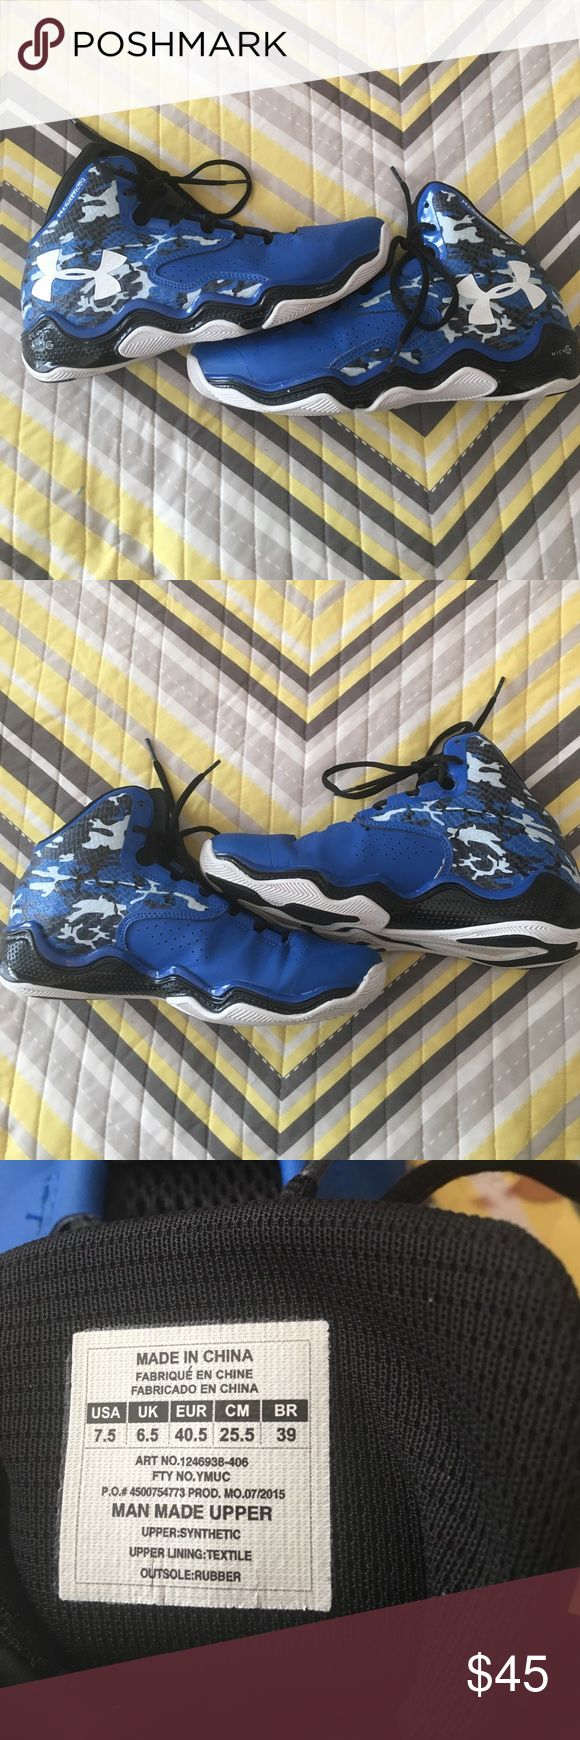 Mens blue camouflage under armour basketball shoes Used. Mens size 7.5. Under armour clutch fit basketball shoes. Some slight scuffing on heels but good condition Under Armour Shoes Sneakers